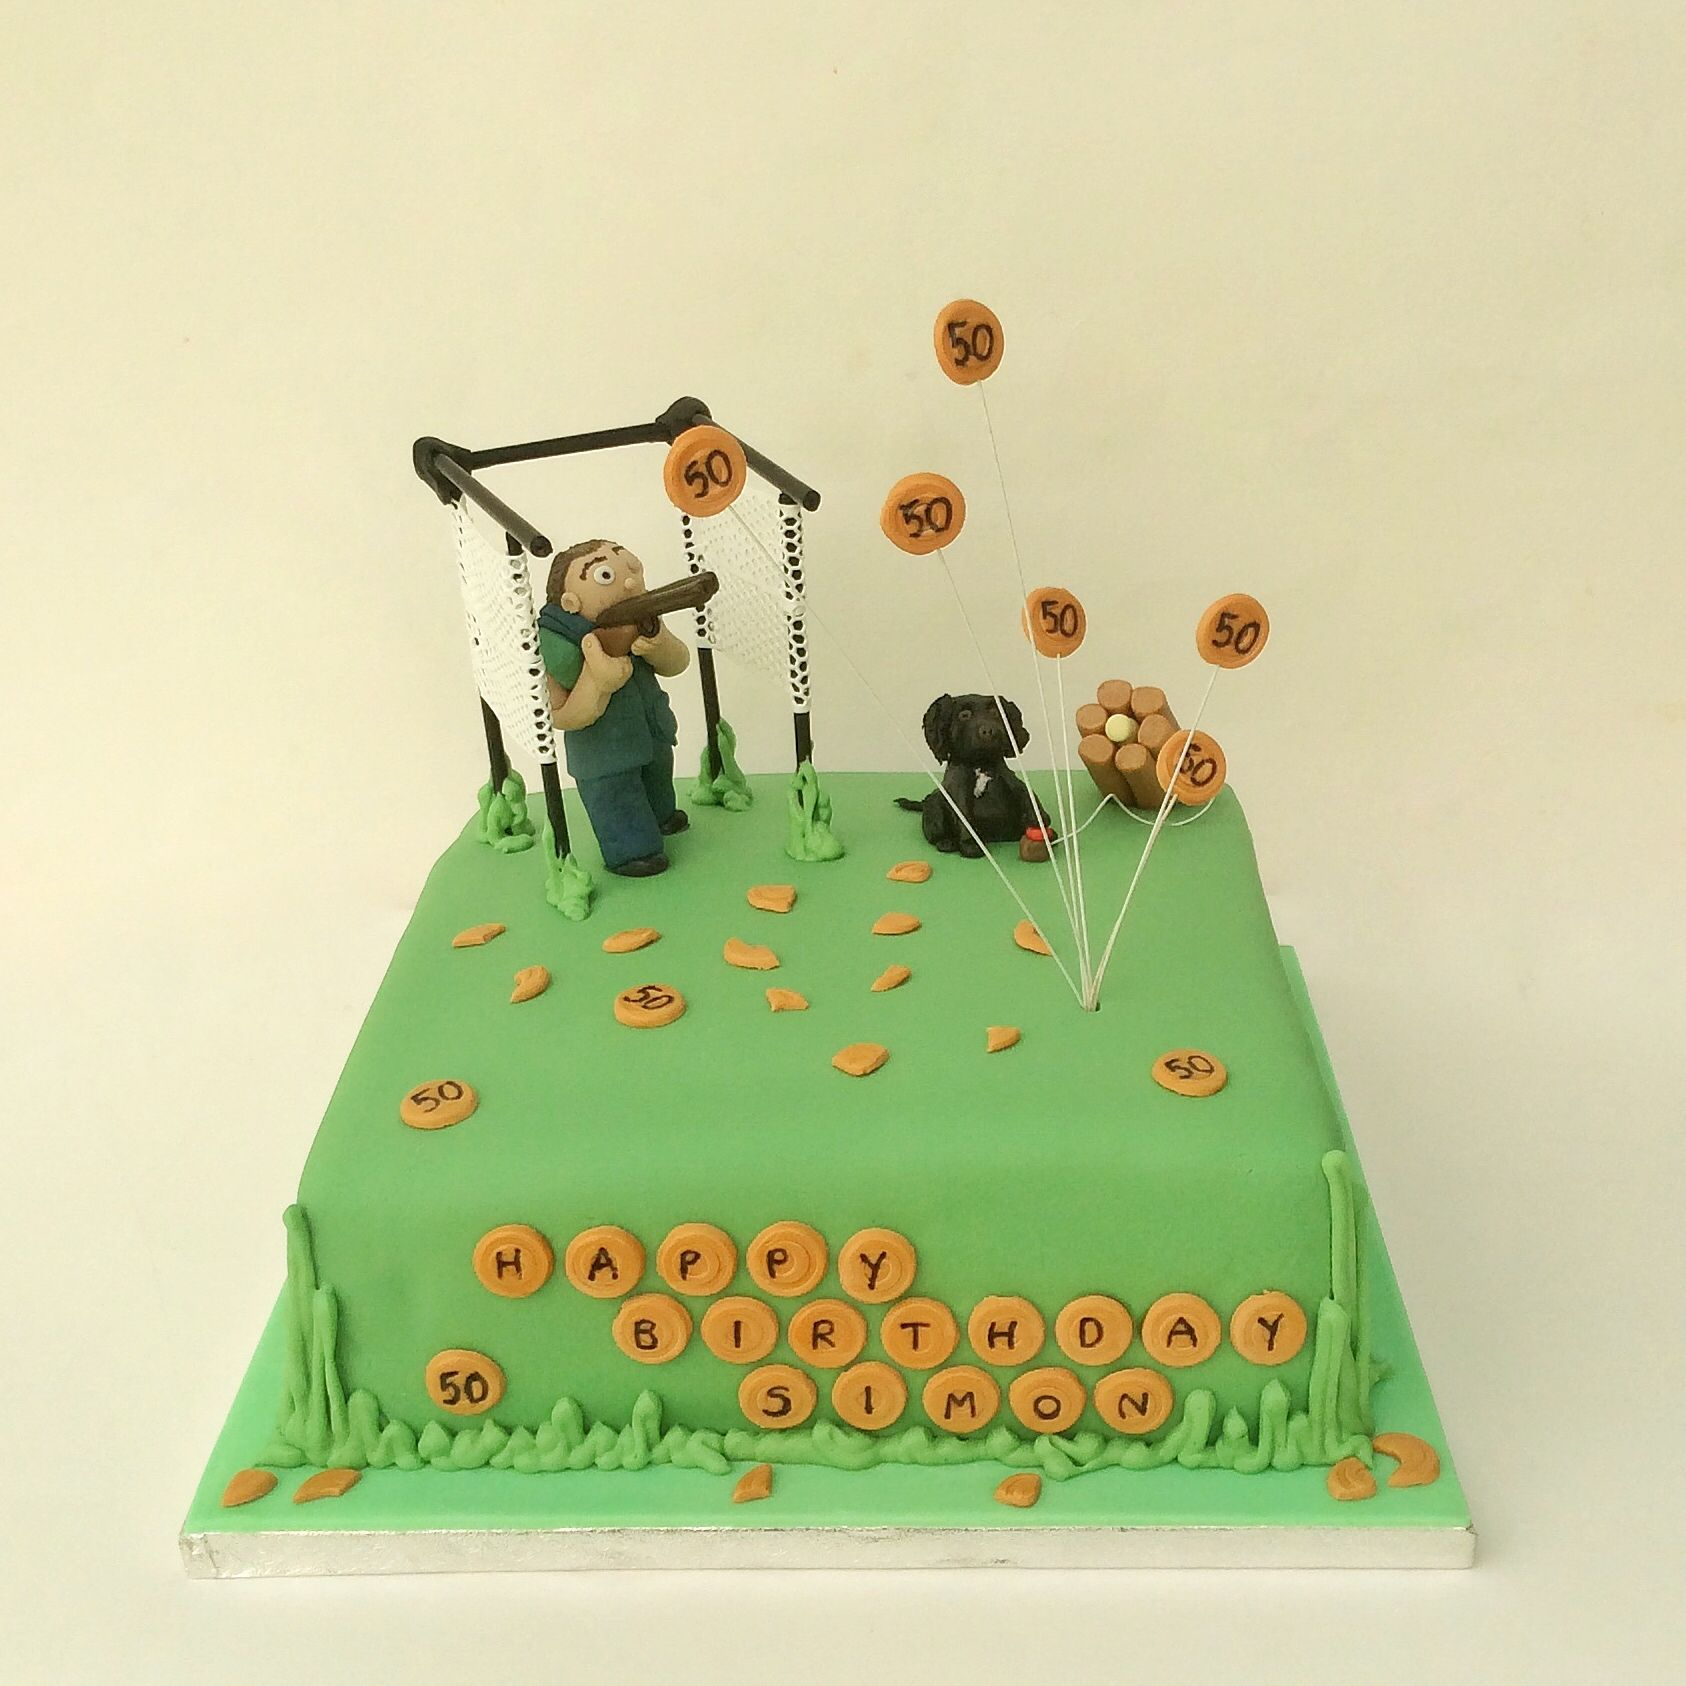 Clay Pigeon Shooting Cake Shannons 30th Pinterest